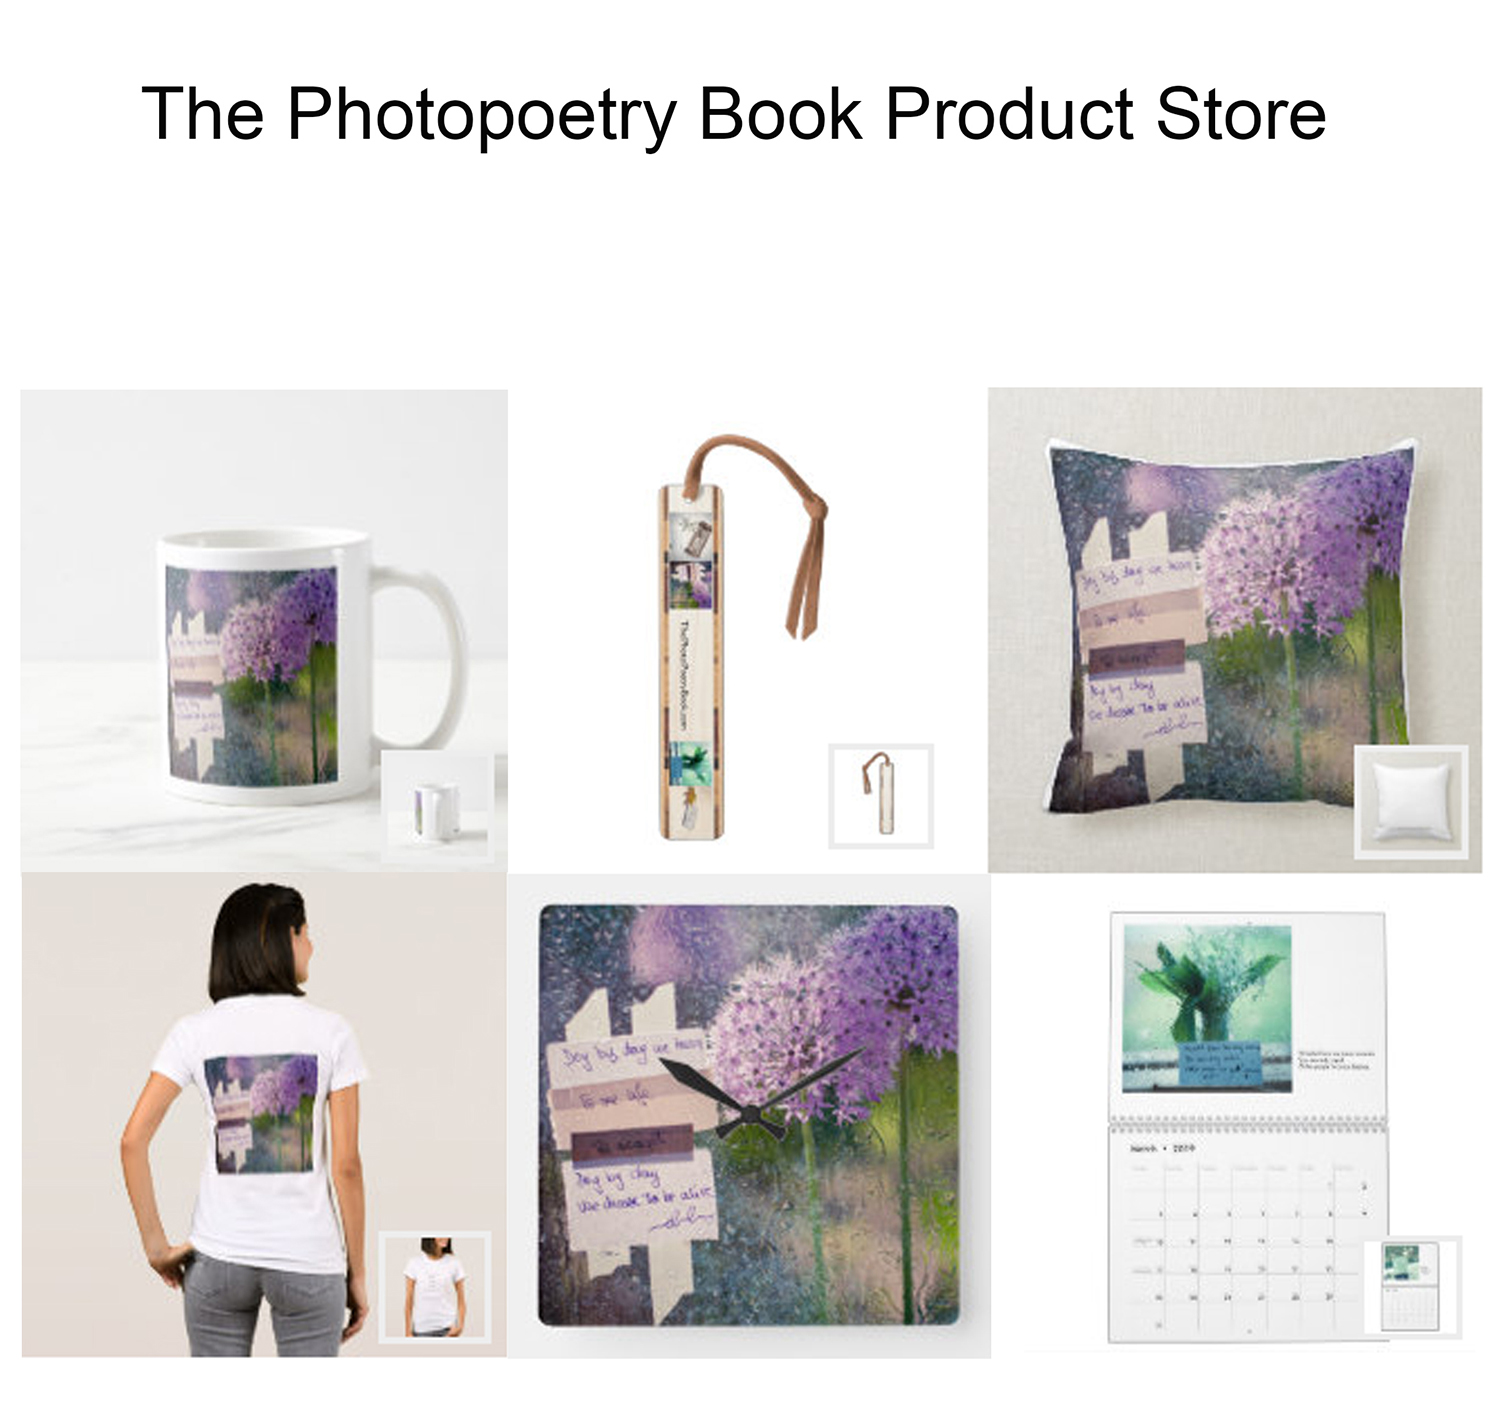 The Photopoetry Book Product Store